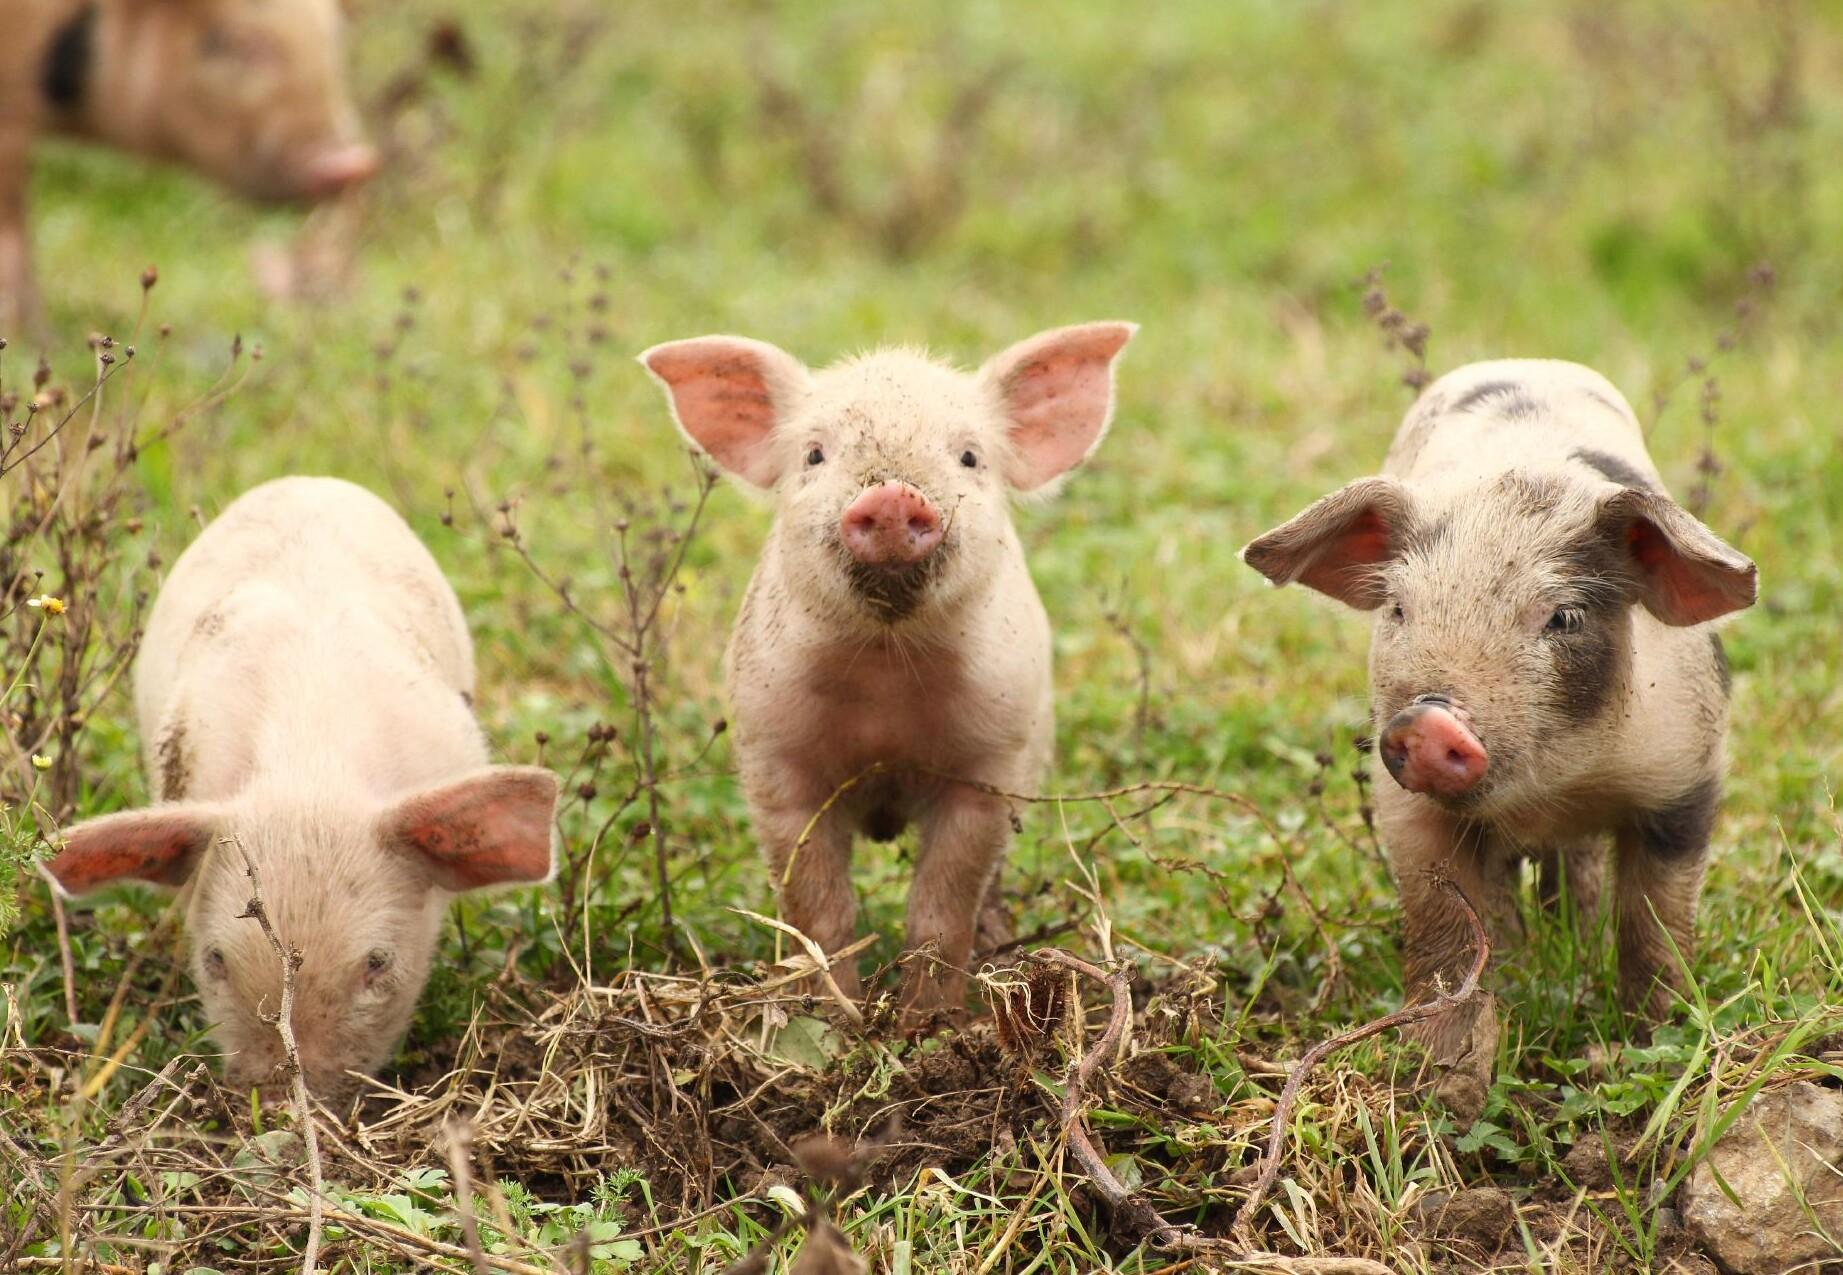 10 facts about pigs - Farm Animals - Topics - Campaigns & Topics - FOUR  PAWS in US